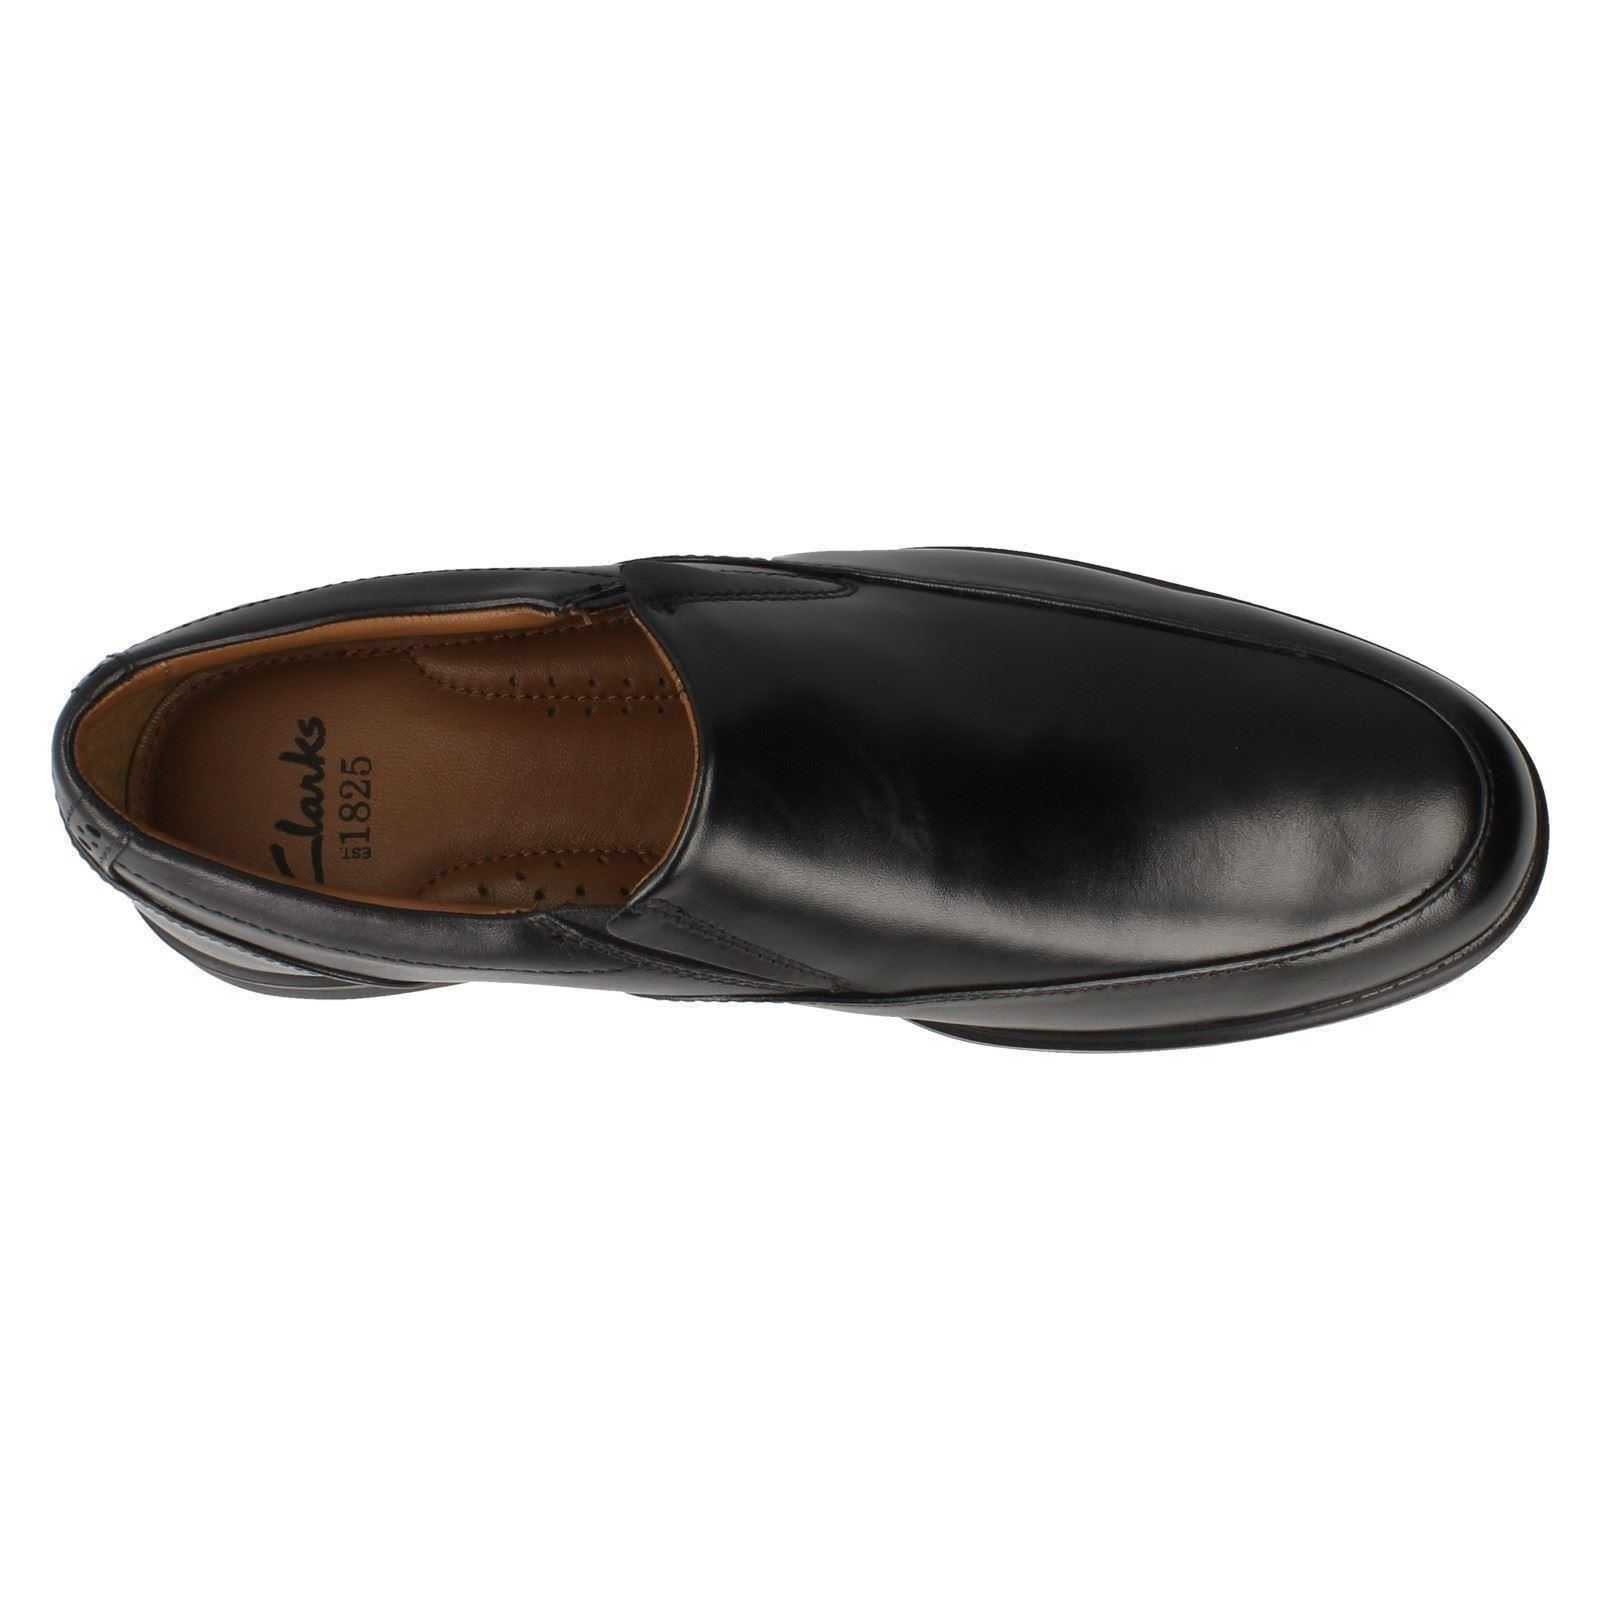 Men's Clarks Shoes The Style - Gabson Step